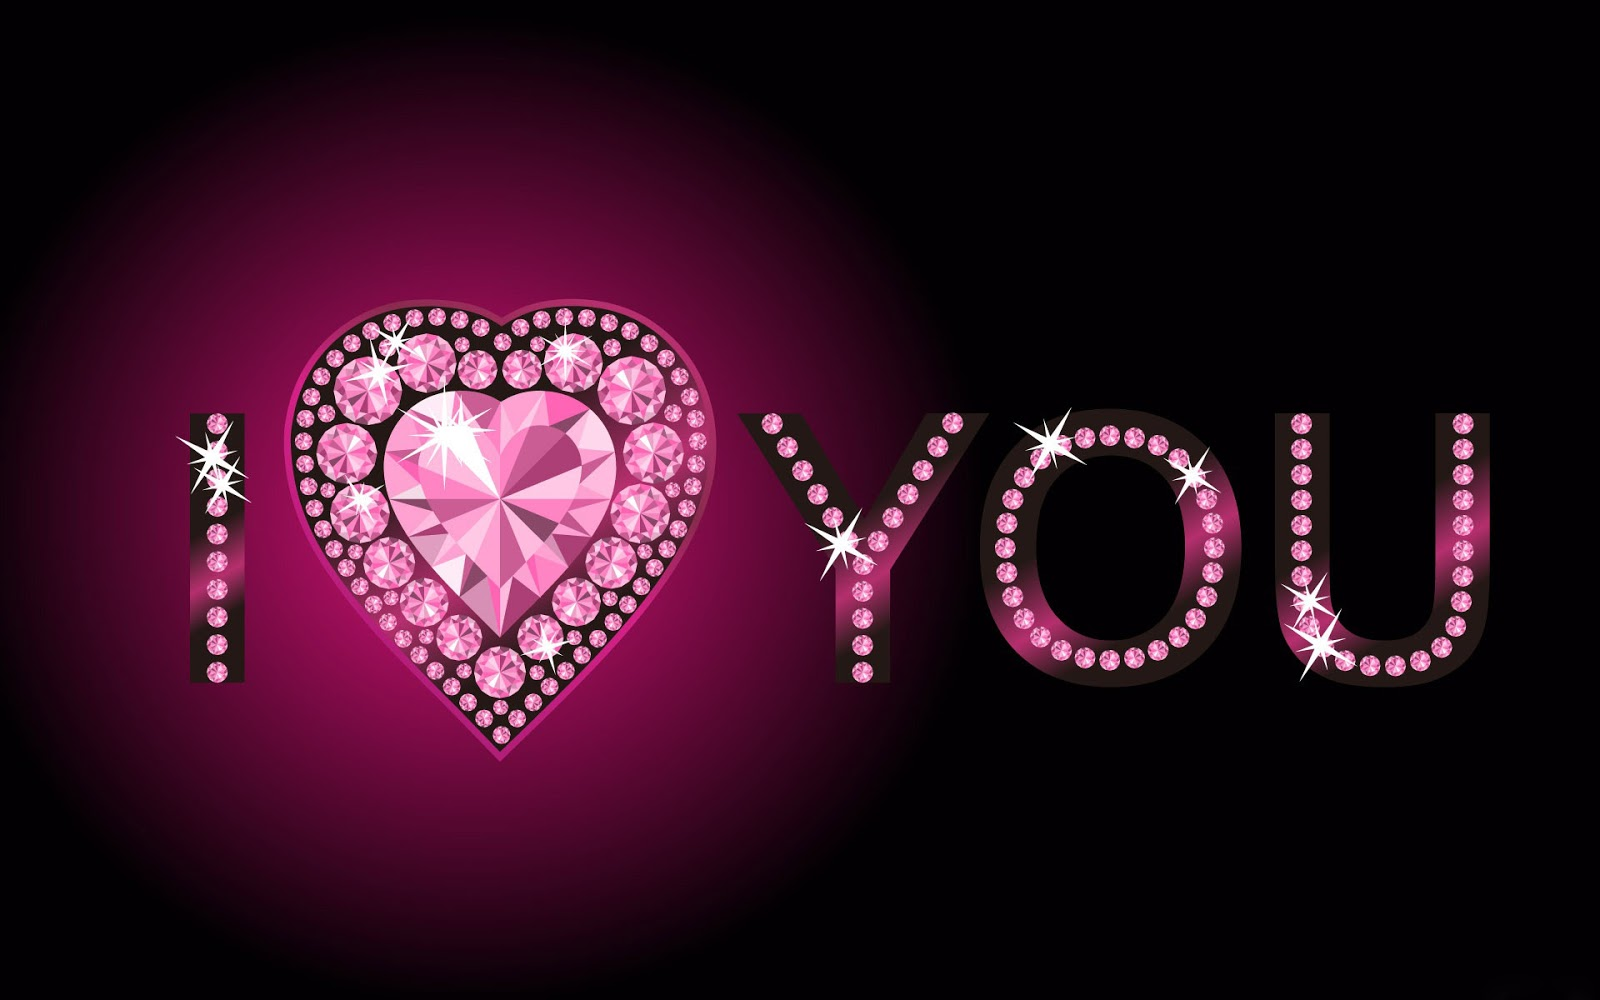 Love Wallpapers In Hd : Desktop Wallpapers,Animals Wallpapers,Flowers Wallpapers ...